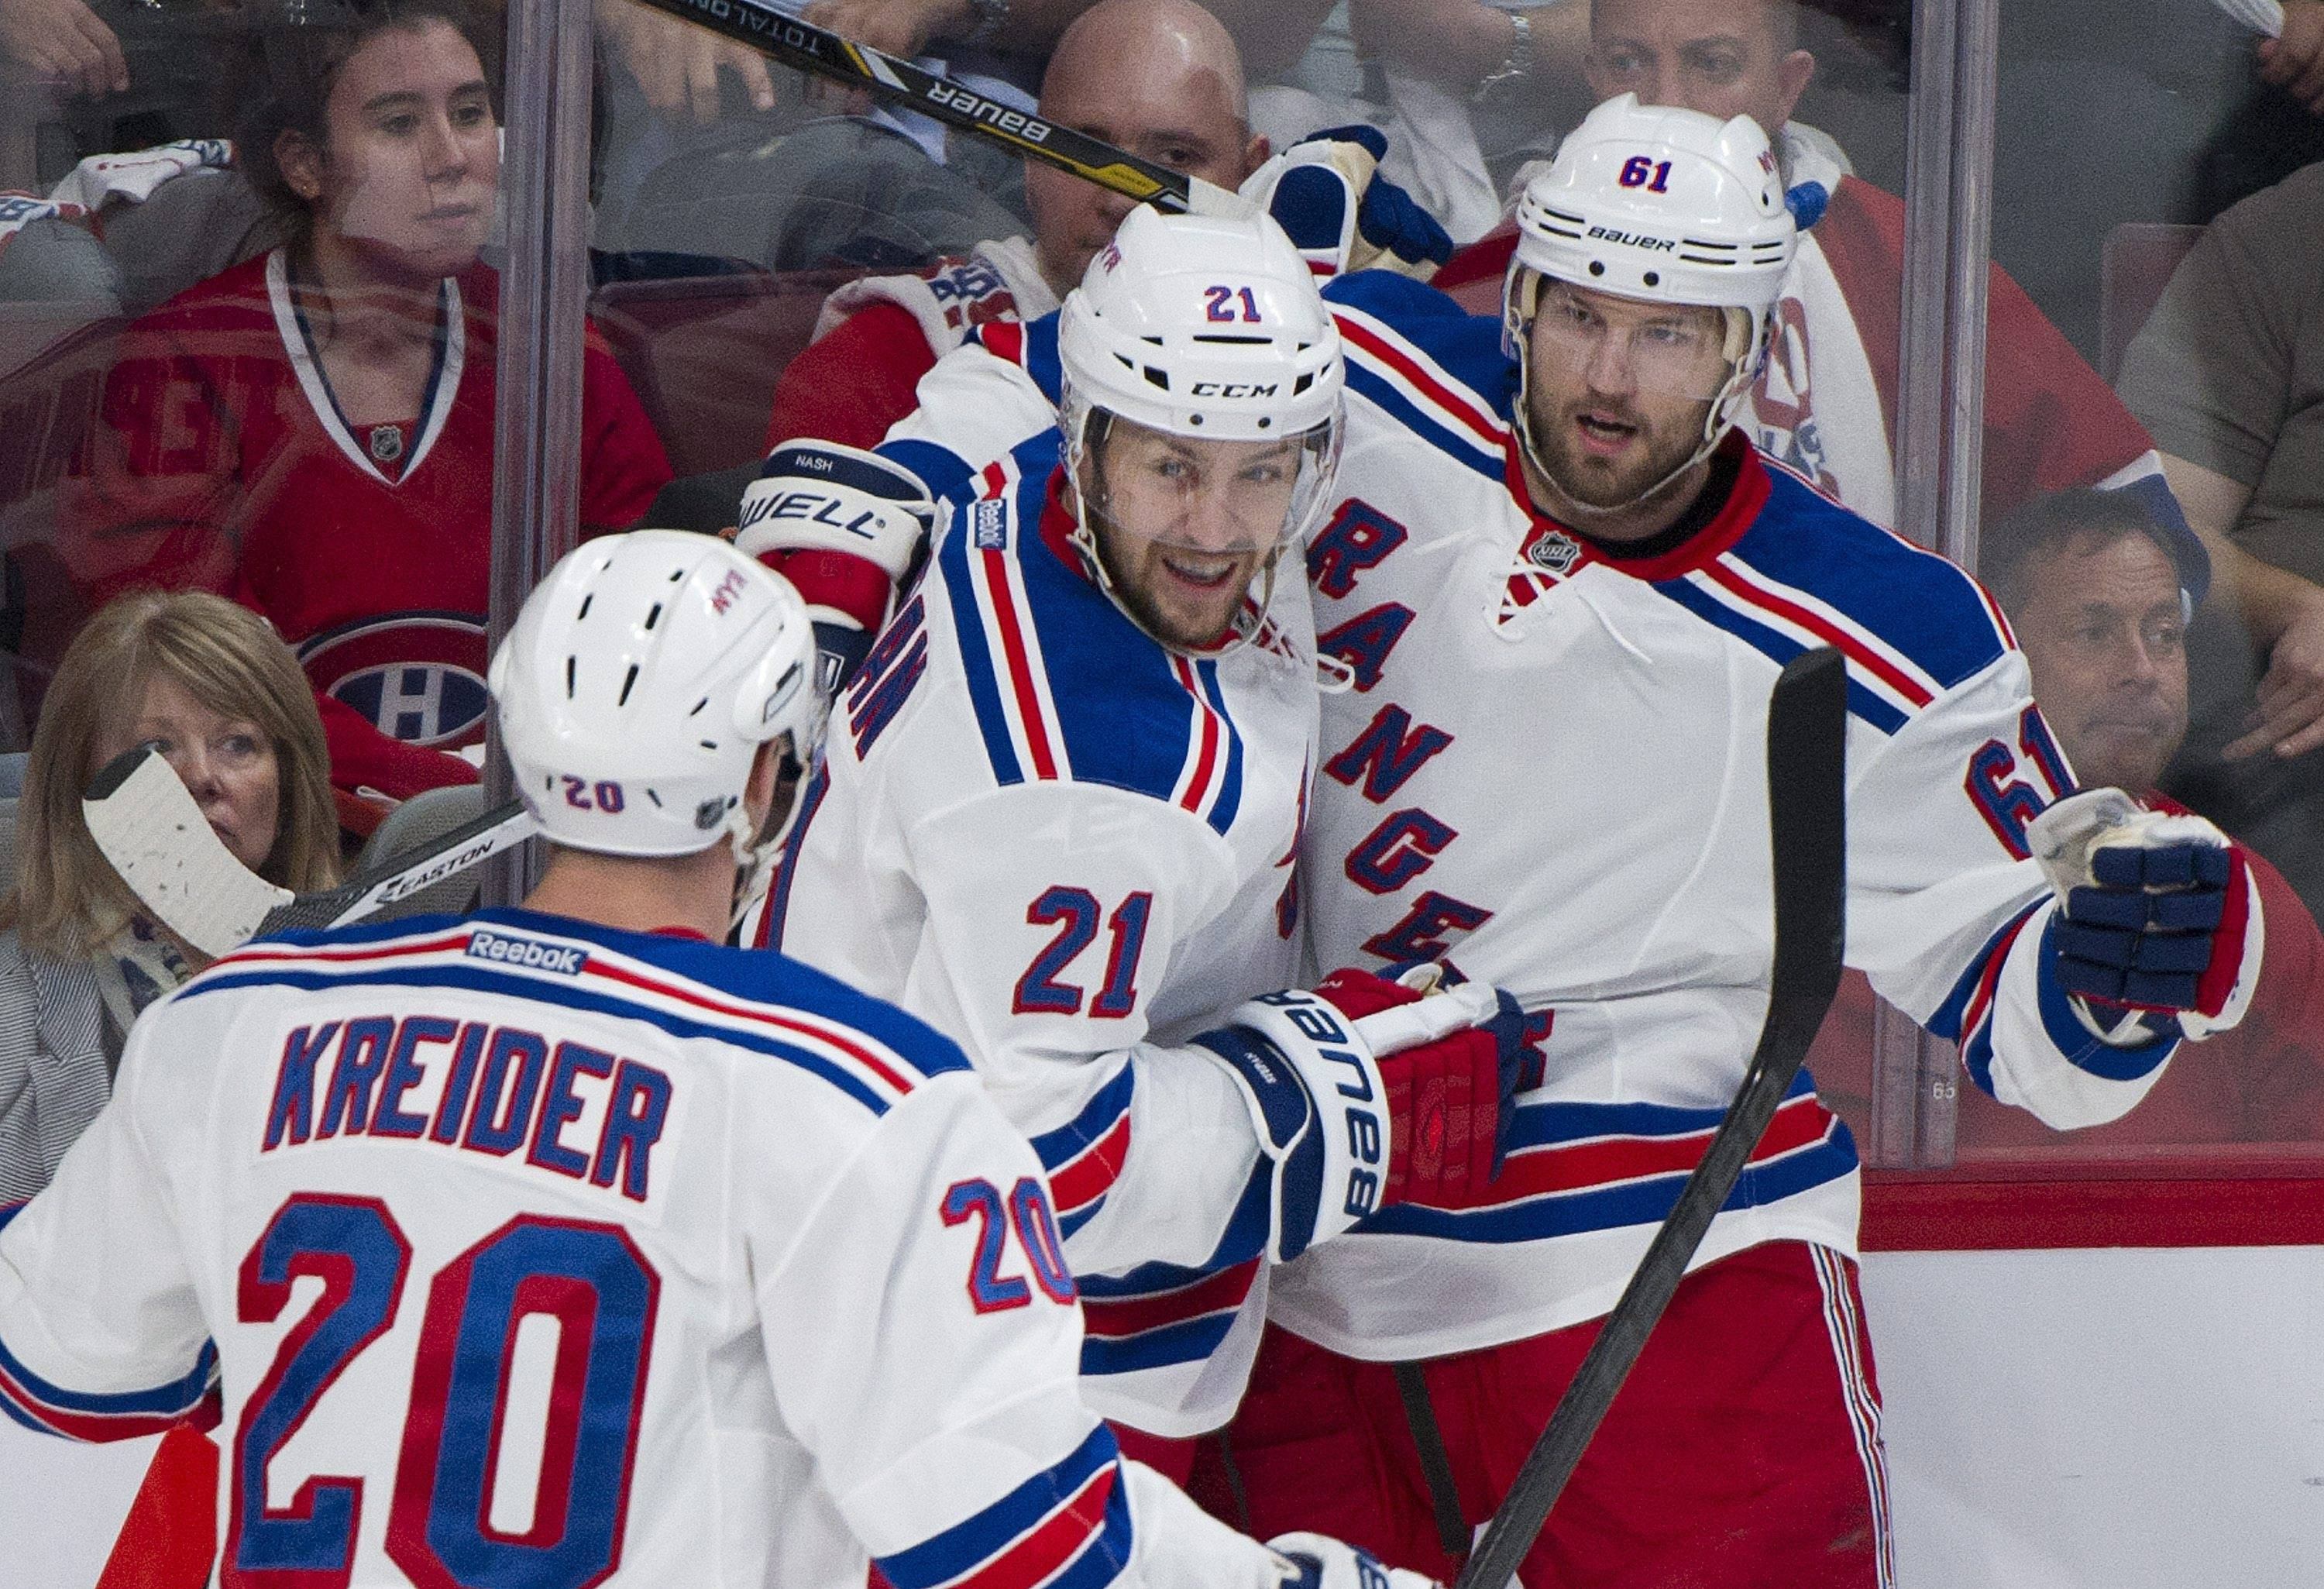 New York Rangers' Rick Nash (61) celebrates with teammates Chris Kreider (20) and Derek Stepan after scoring against the Montreal Canadiens during the first period Monday in Game 2 of the NHL Eastern Conference final Stanley Cup playoff game in Montreal.